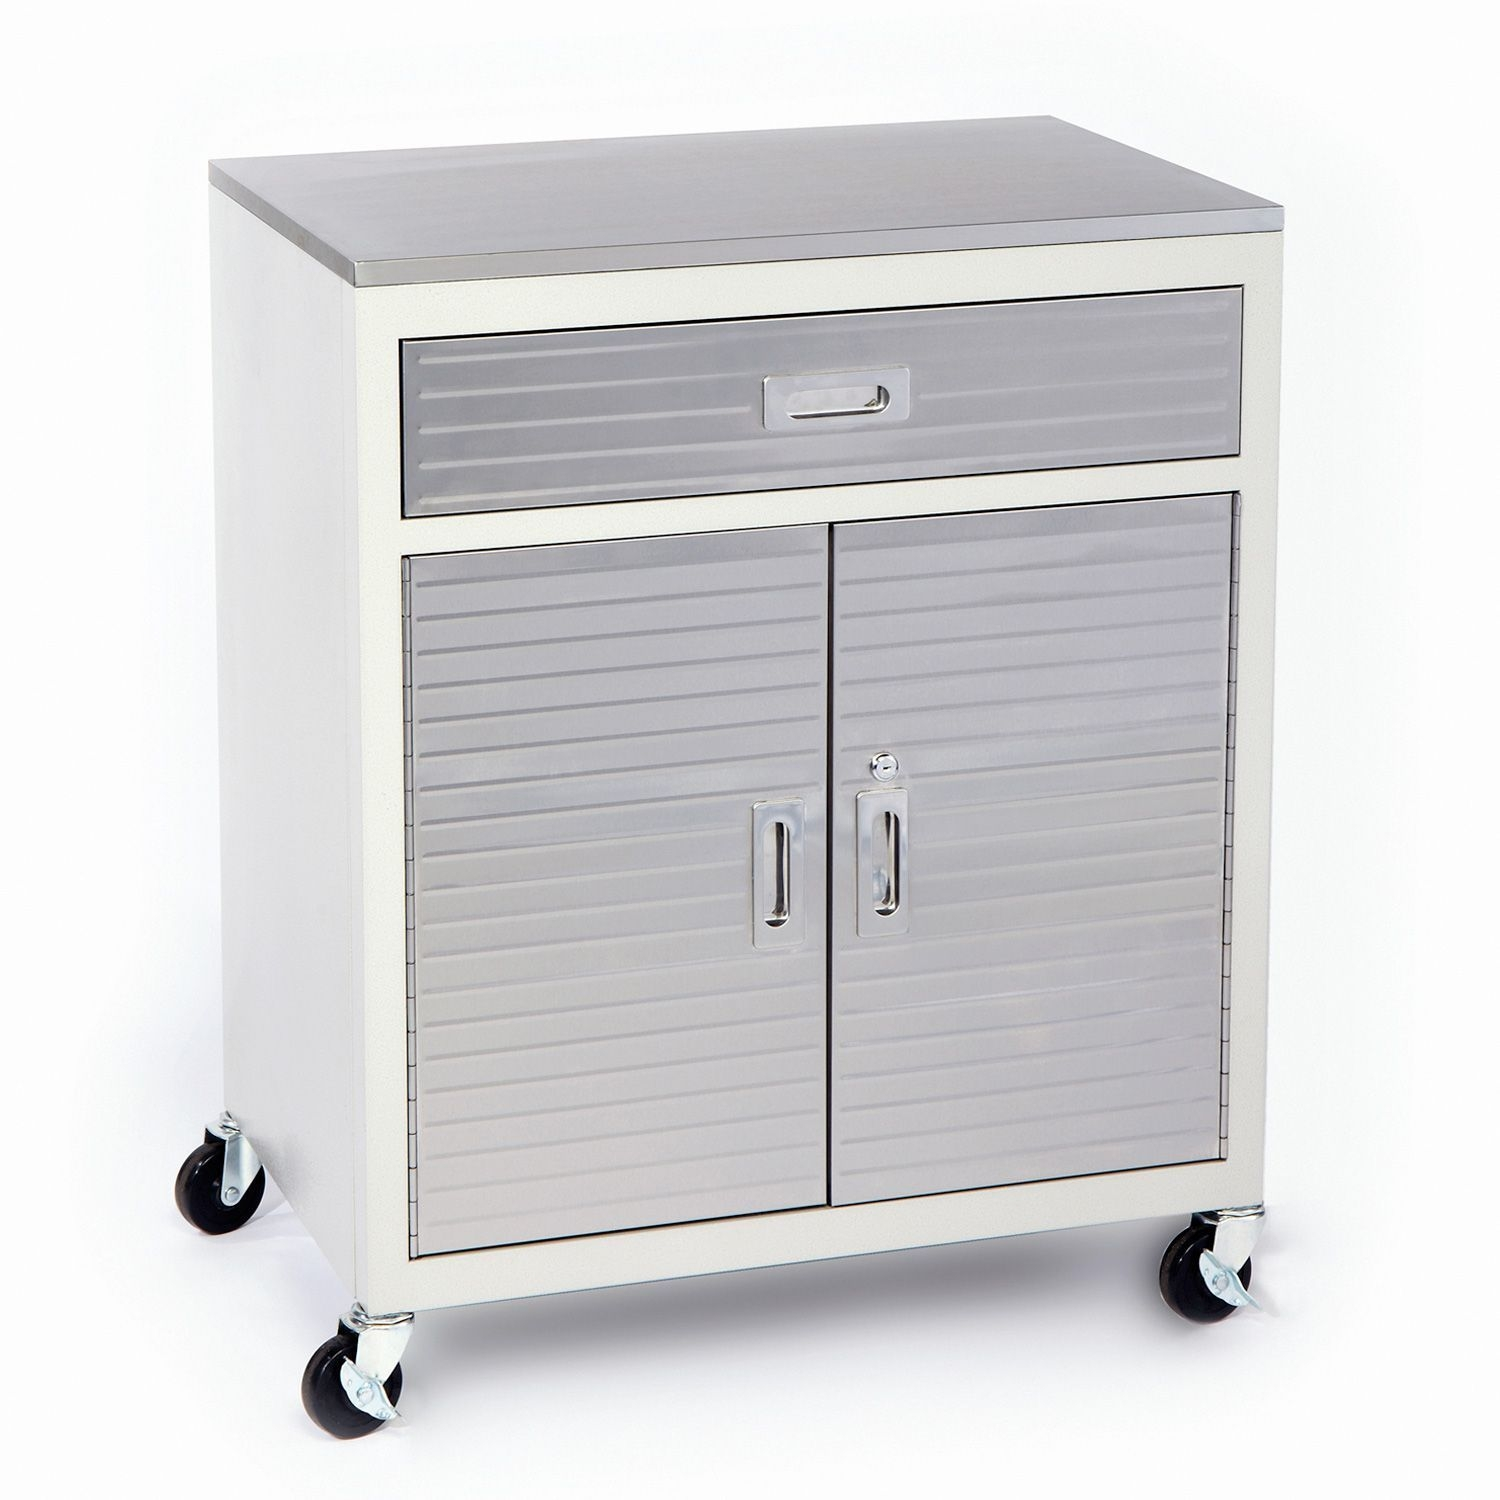 Small Storage Cabinet On Wheels